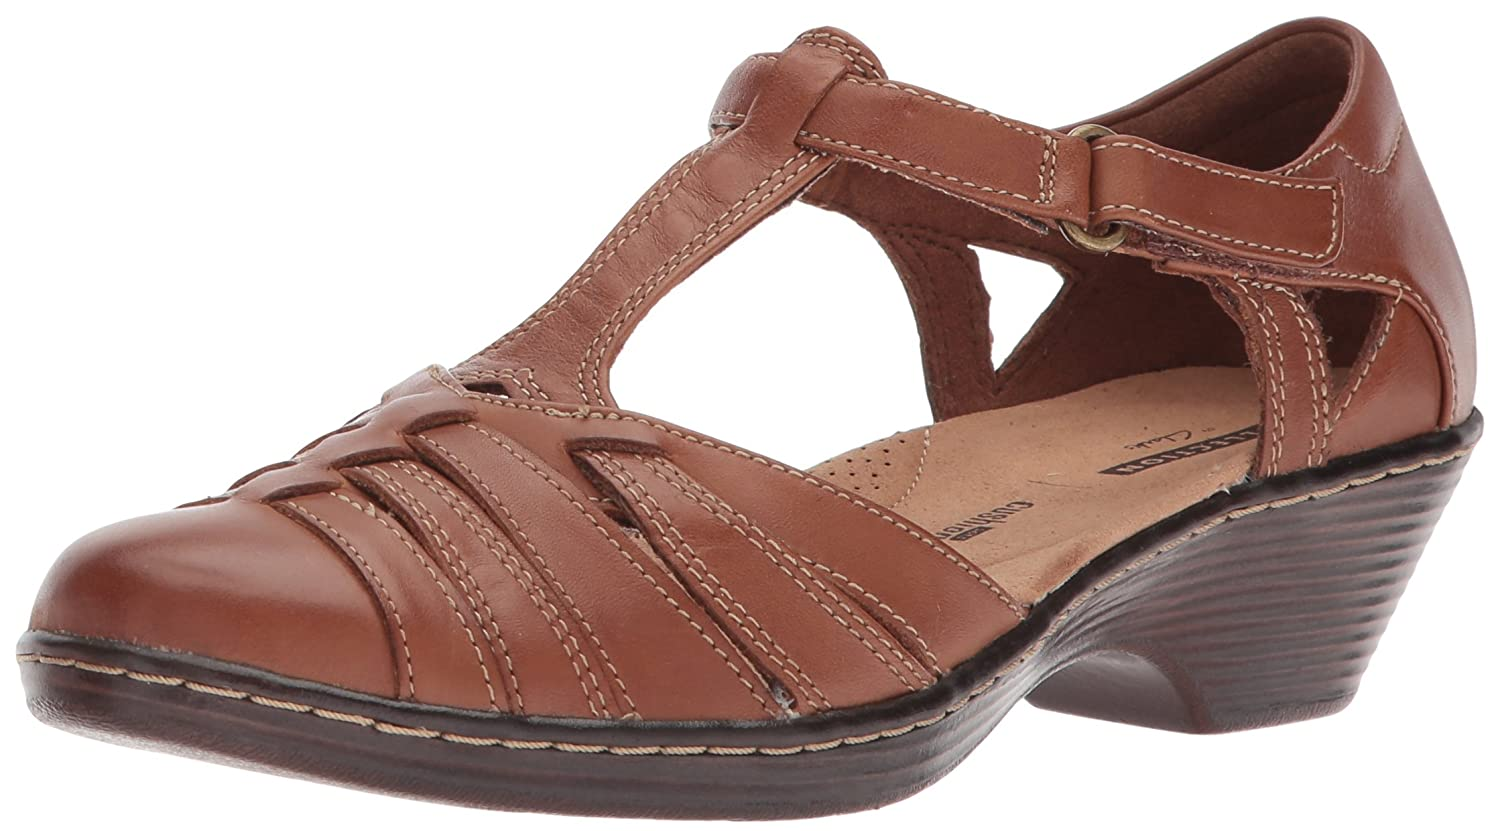 4540c4a805 Clarks Women's Wendy Alto Fisherman Sandal: Amazon.co.uk: Shoes & Bags